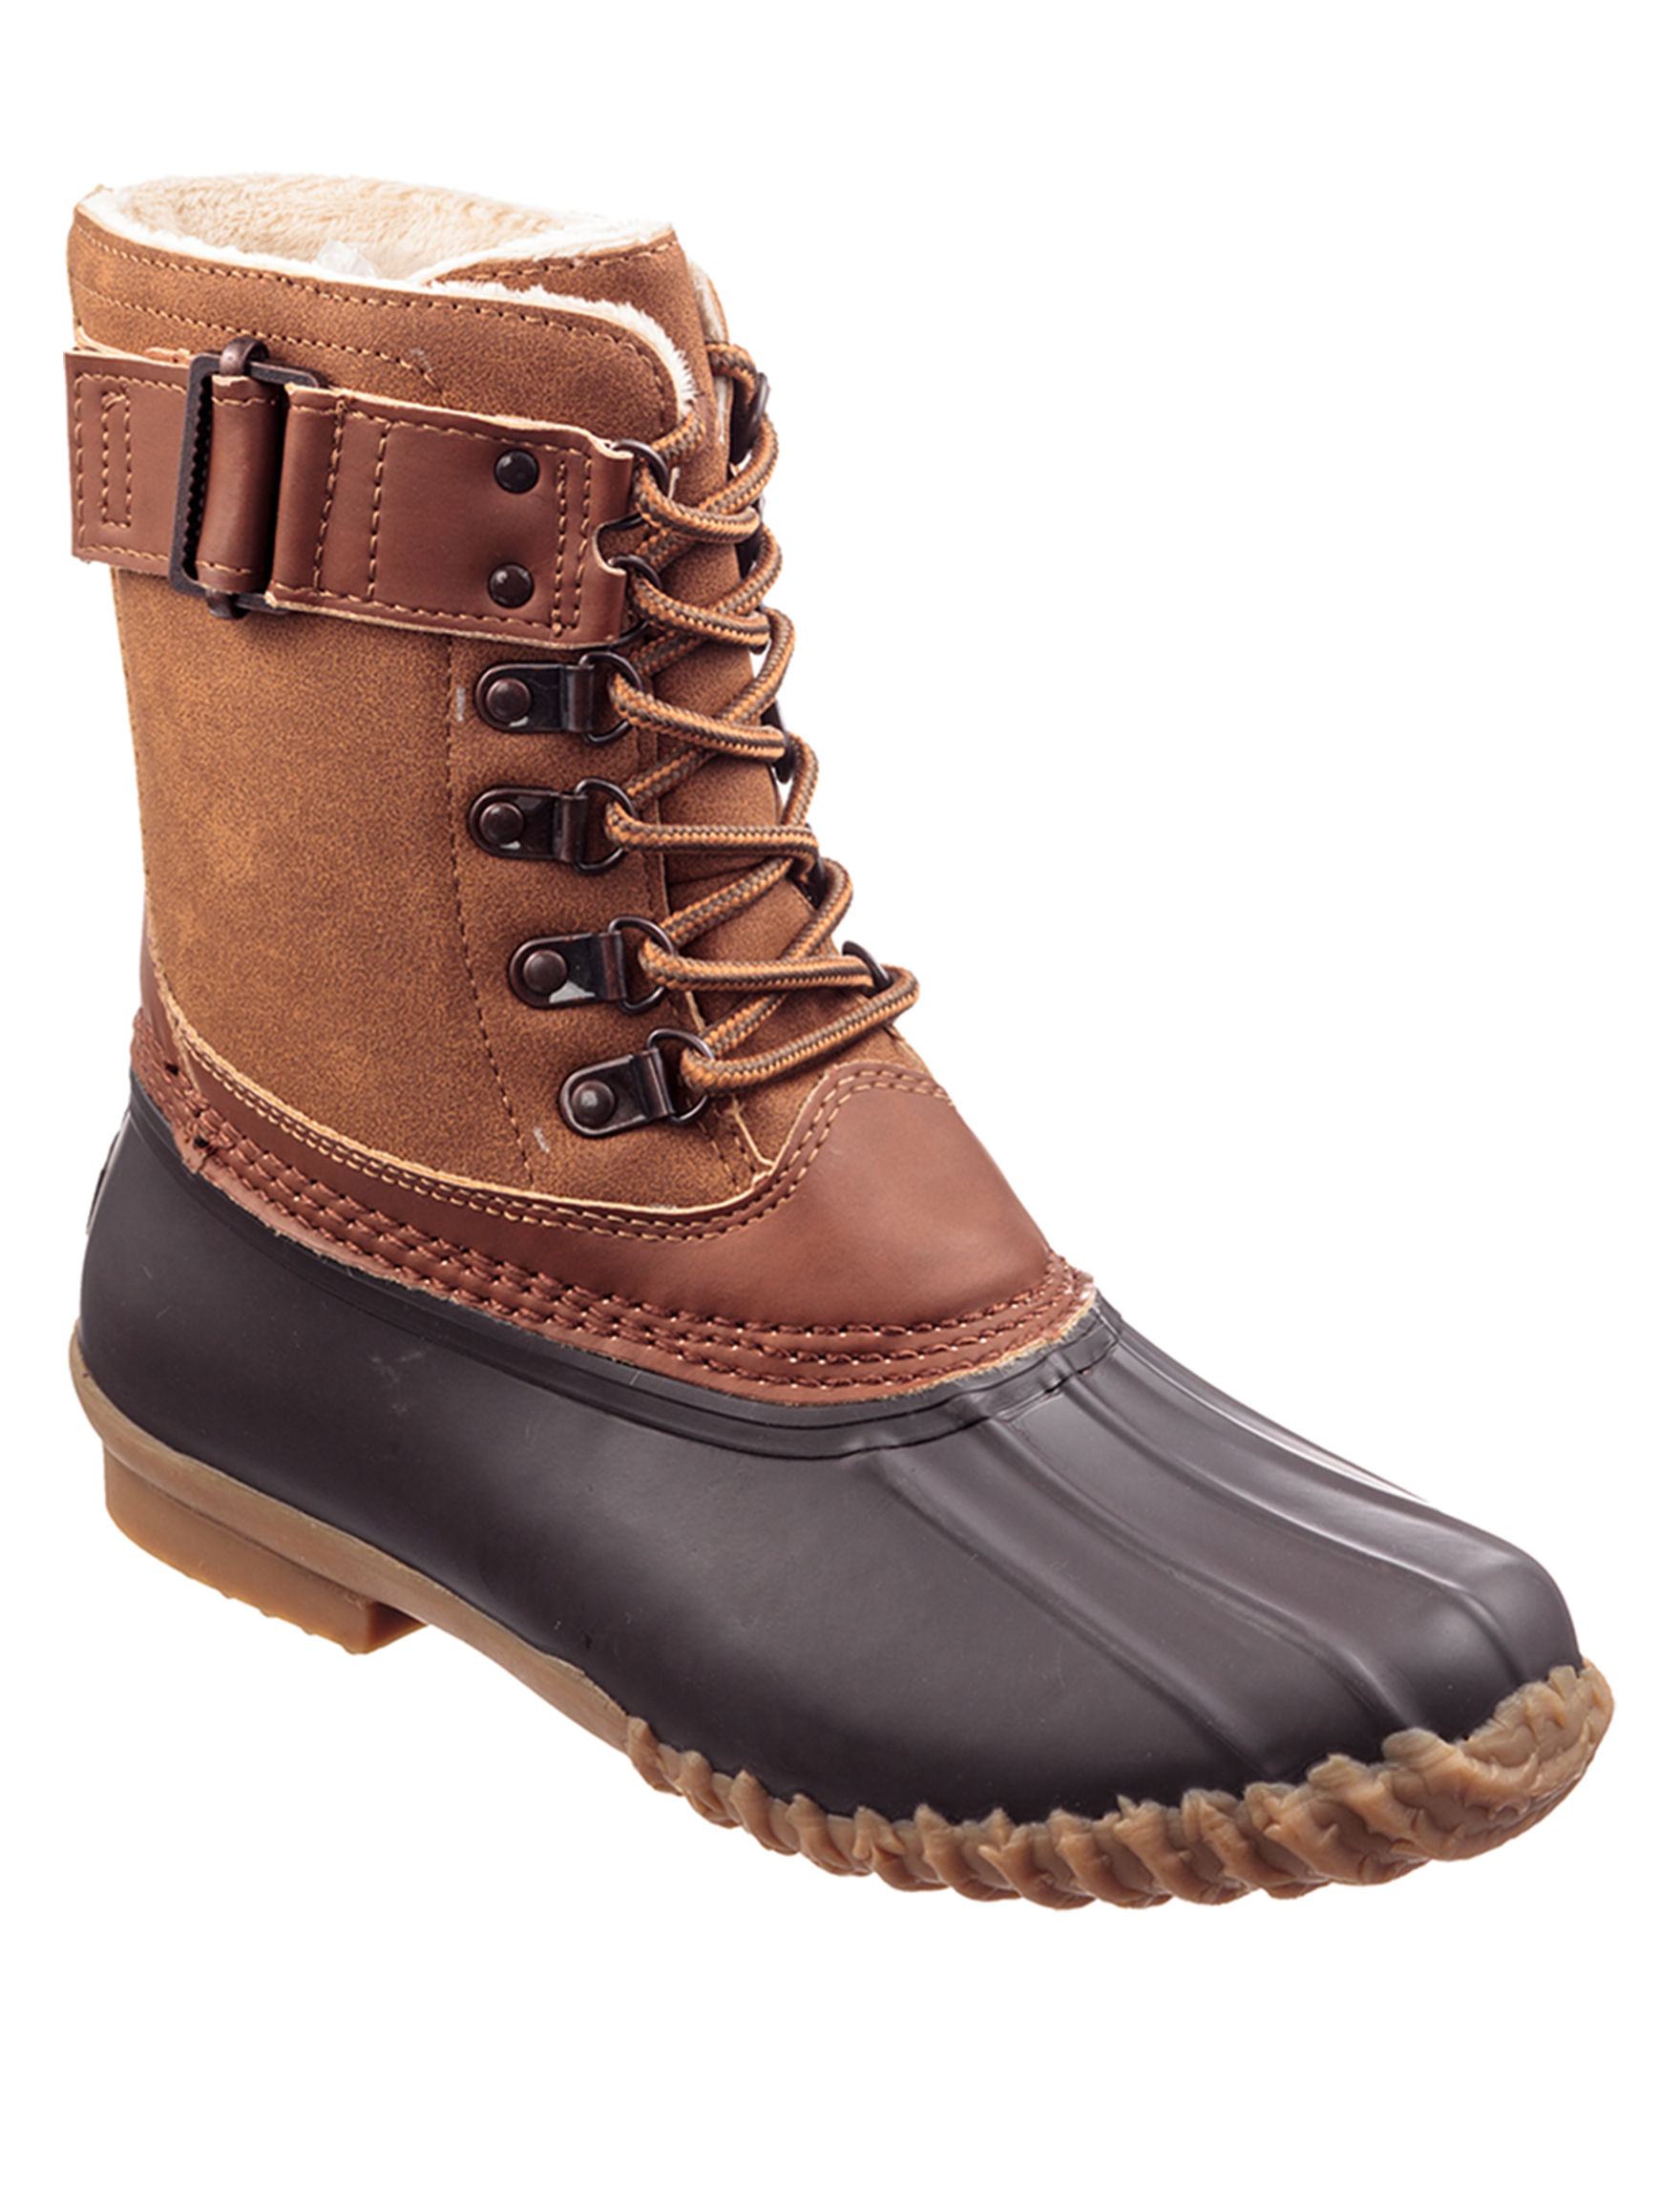 JBU Brown Rain Boots Winter Boots